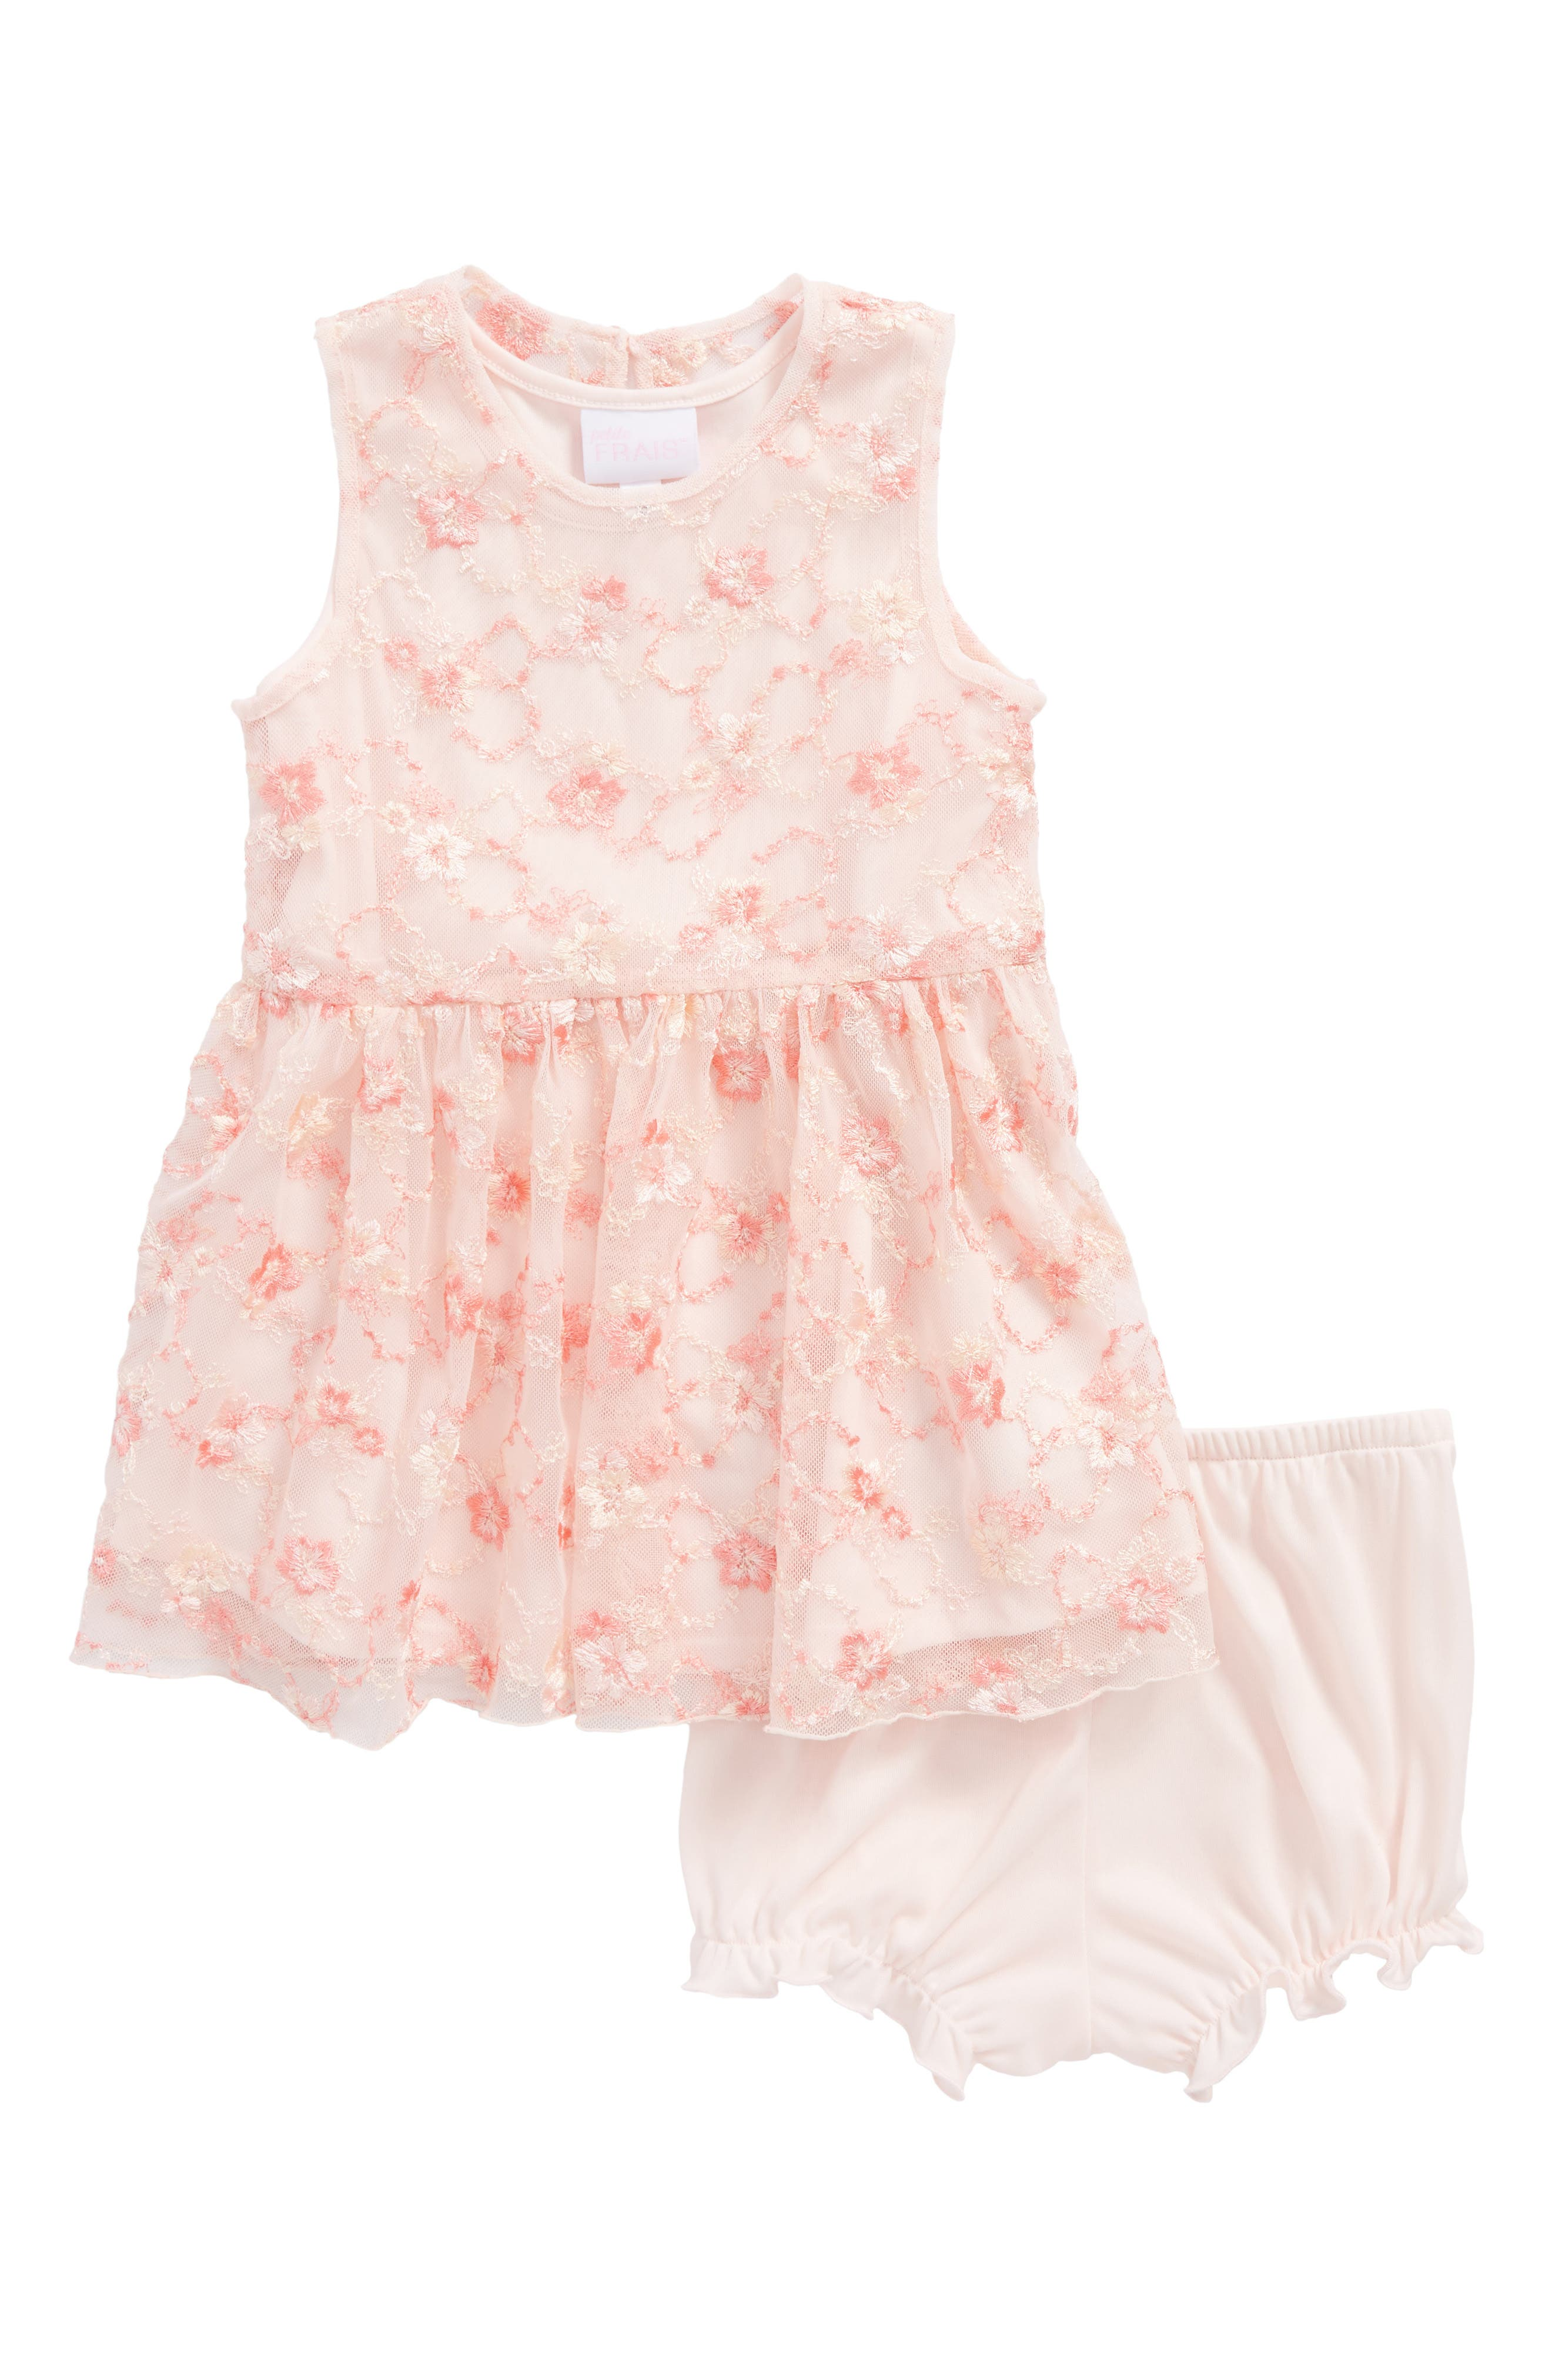 Main Image - Frais Floral Embroidered Tulle Dress (Baby Girls)